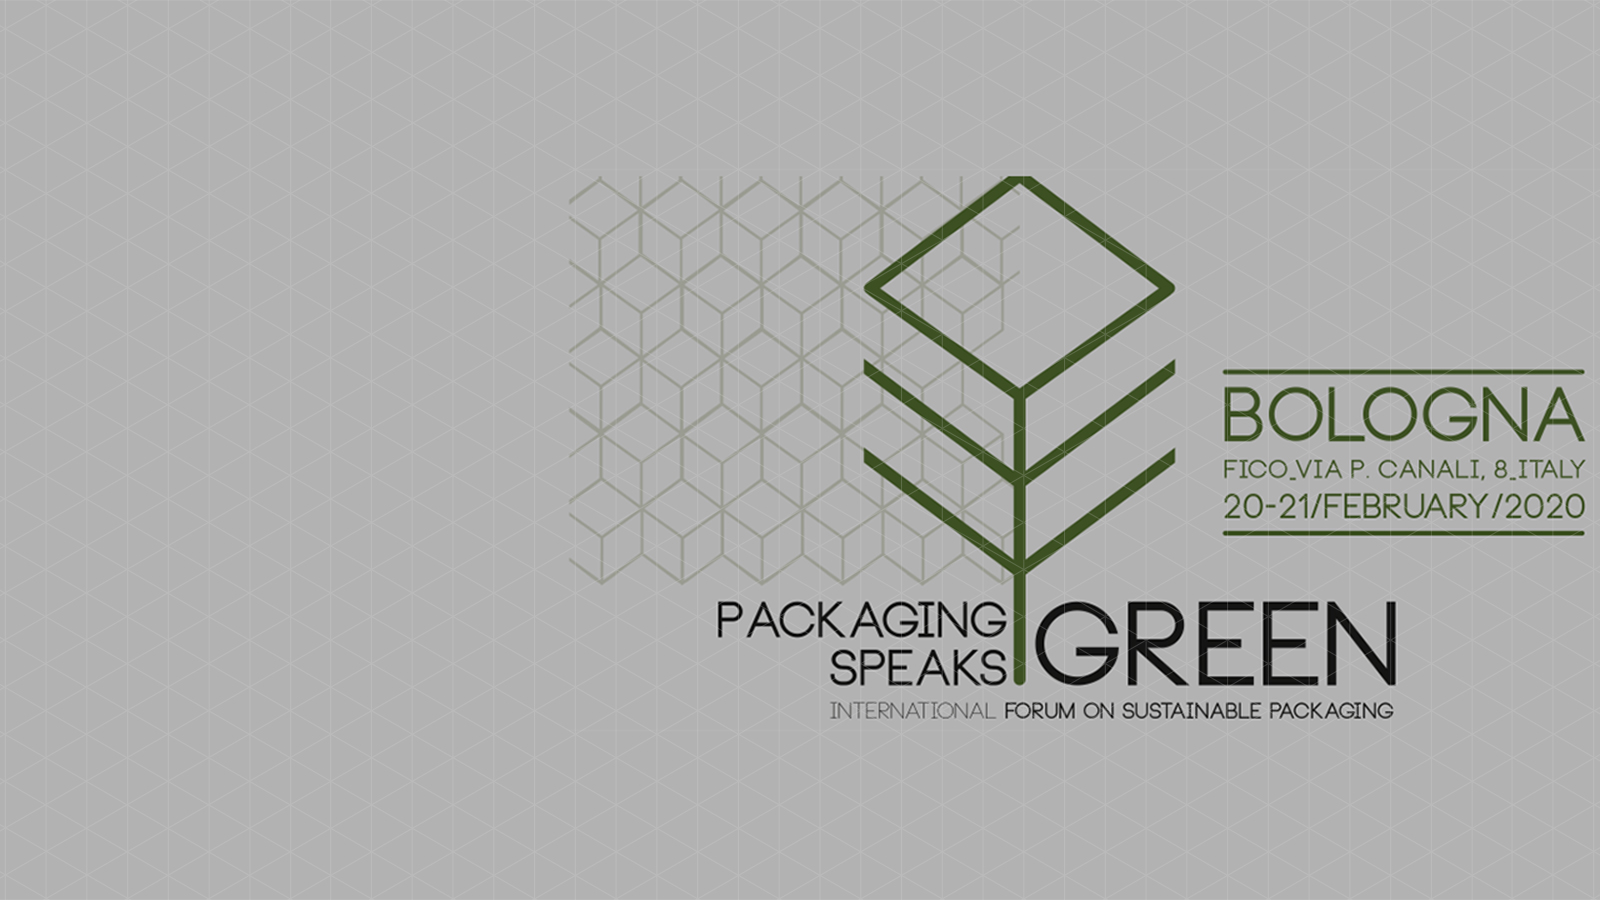 Packaging Speaks Green Convention